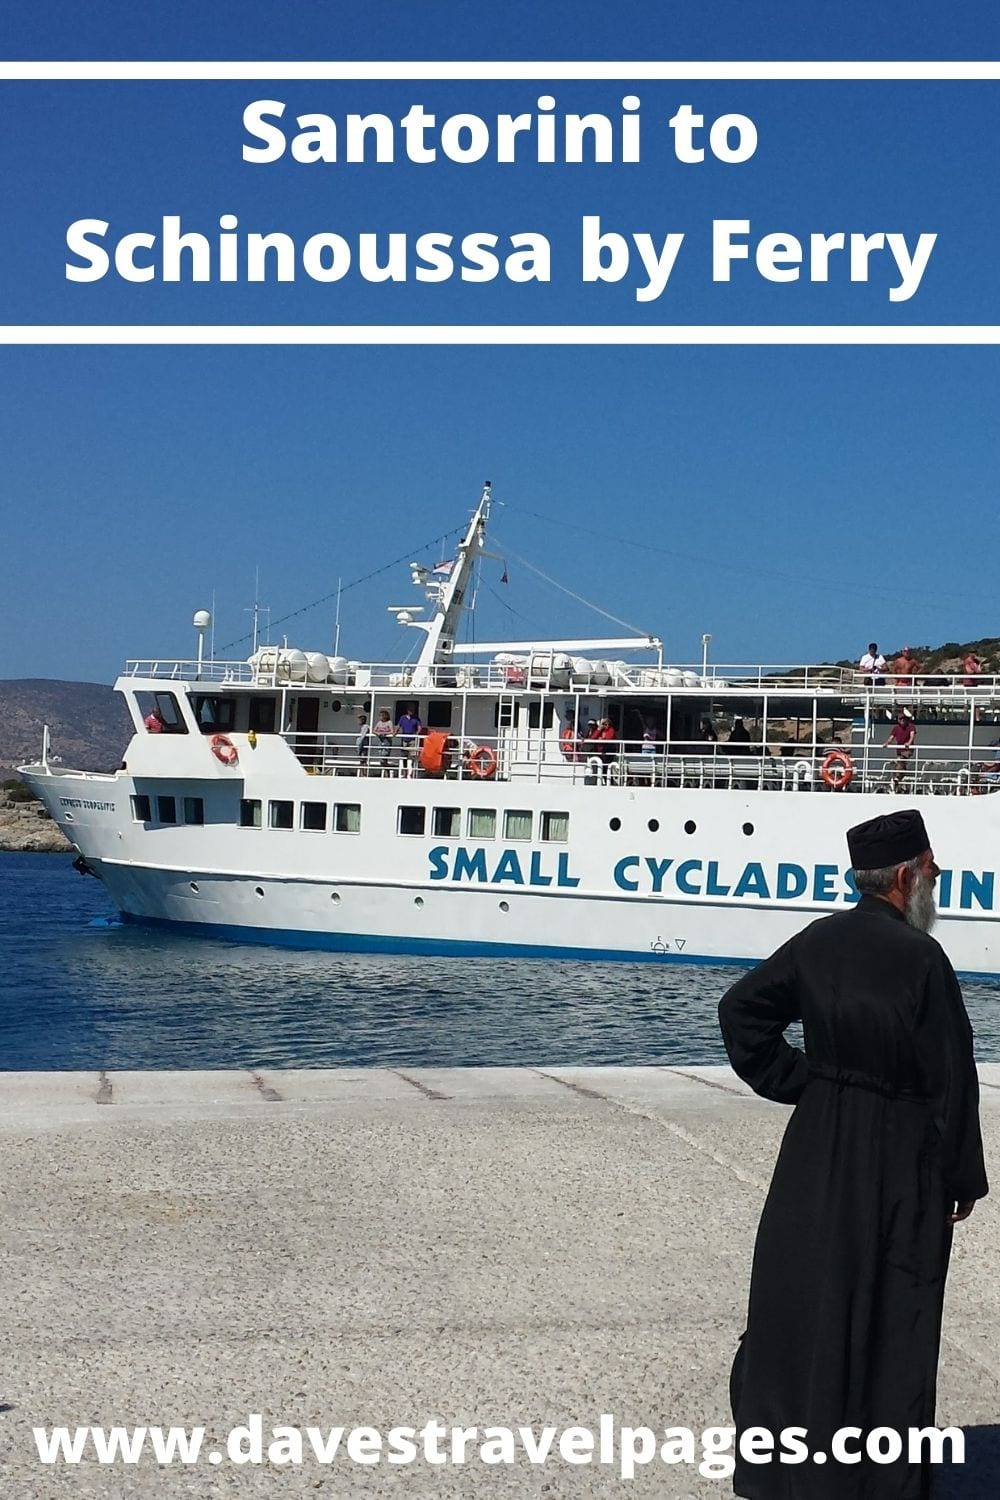 How to get from Santorini to Schinoussa by ferry